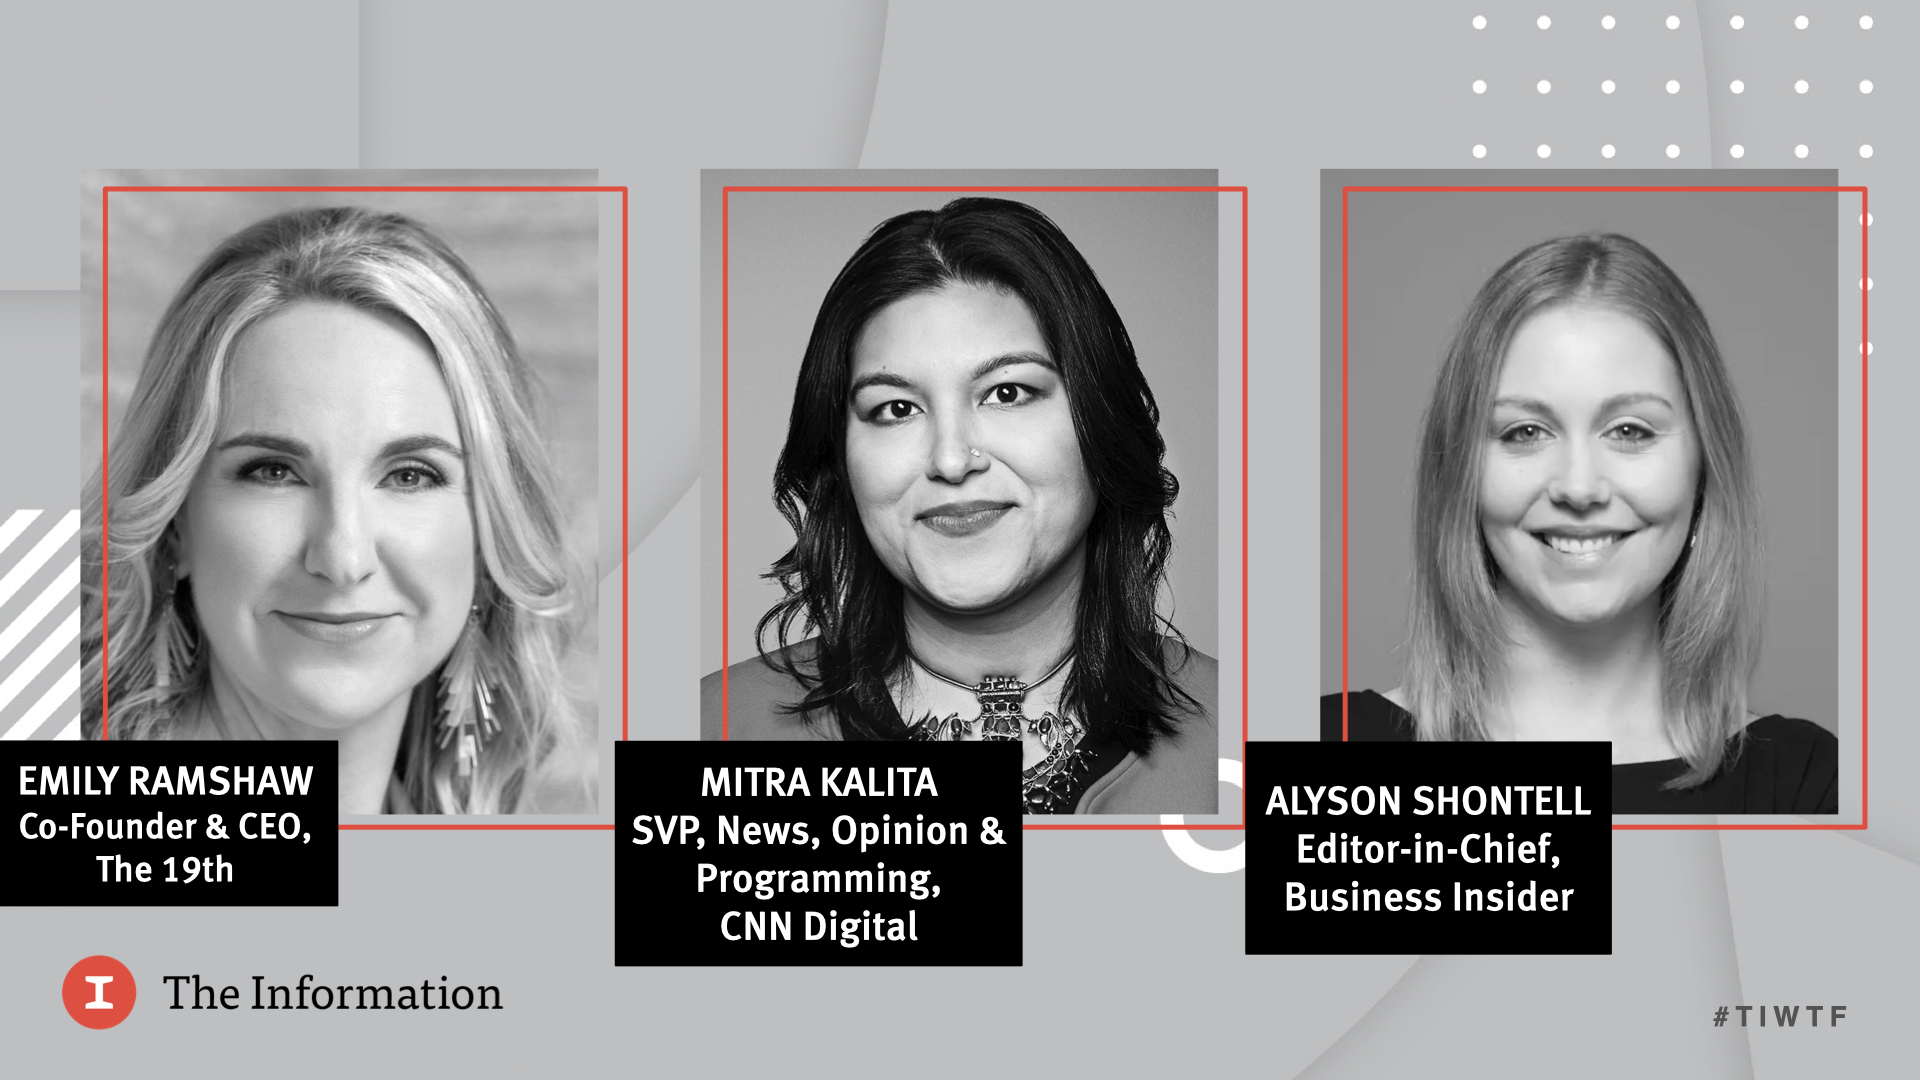 WTF 2020 - Media Panel with Business Insider's Editor-in-Chief Alyson Shontell, The 19th's Co-Founder & CEO Emily Ramshaw, and CNN's Digital SVP for News, Opinion & Programming Mitra Kalita, moderated by Jessica Toonkel, reporter at The Information